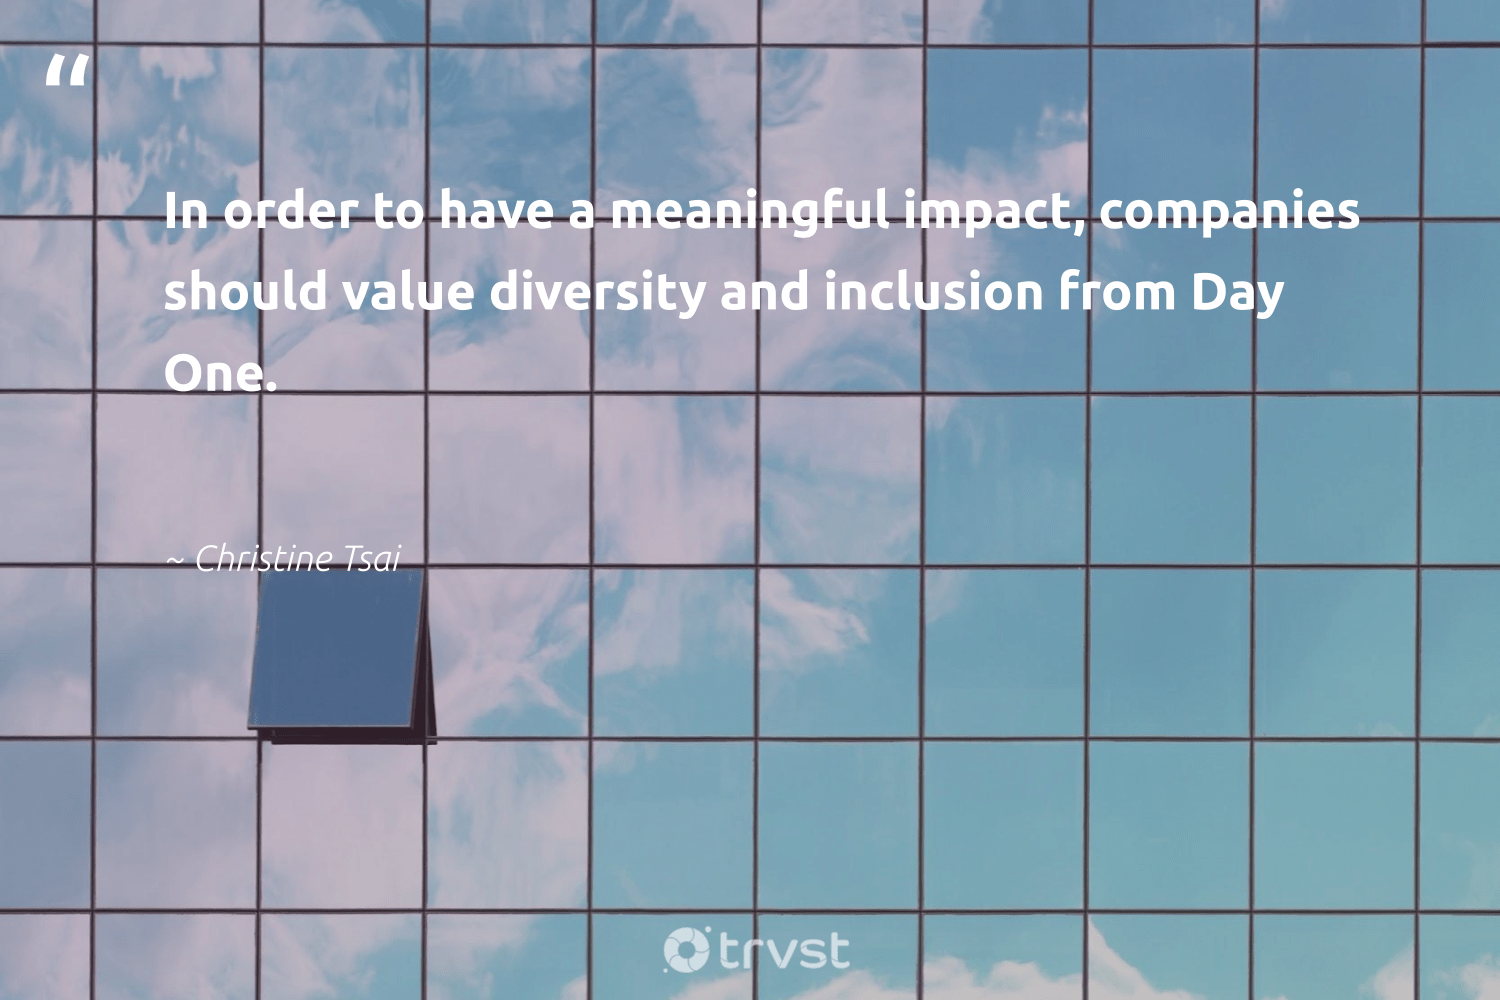 """""""In order to have a meaningful impact, companies should value diversity and inclusion from Day One.""""  - Christine Tsai #trvst #quotes #impact #diversity #inclusion #representationmatters #discrimination #ecoconscious #socialgood #dotherightthing #sharedresponsibility #weareallone"""